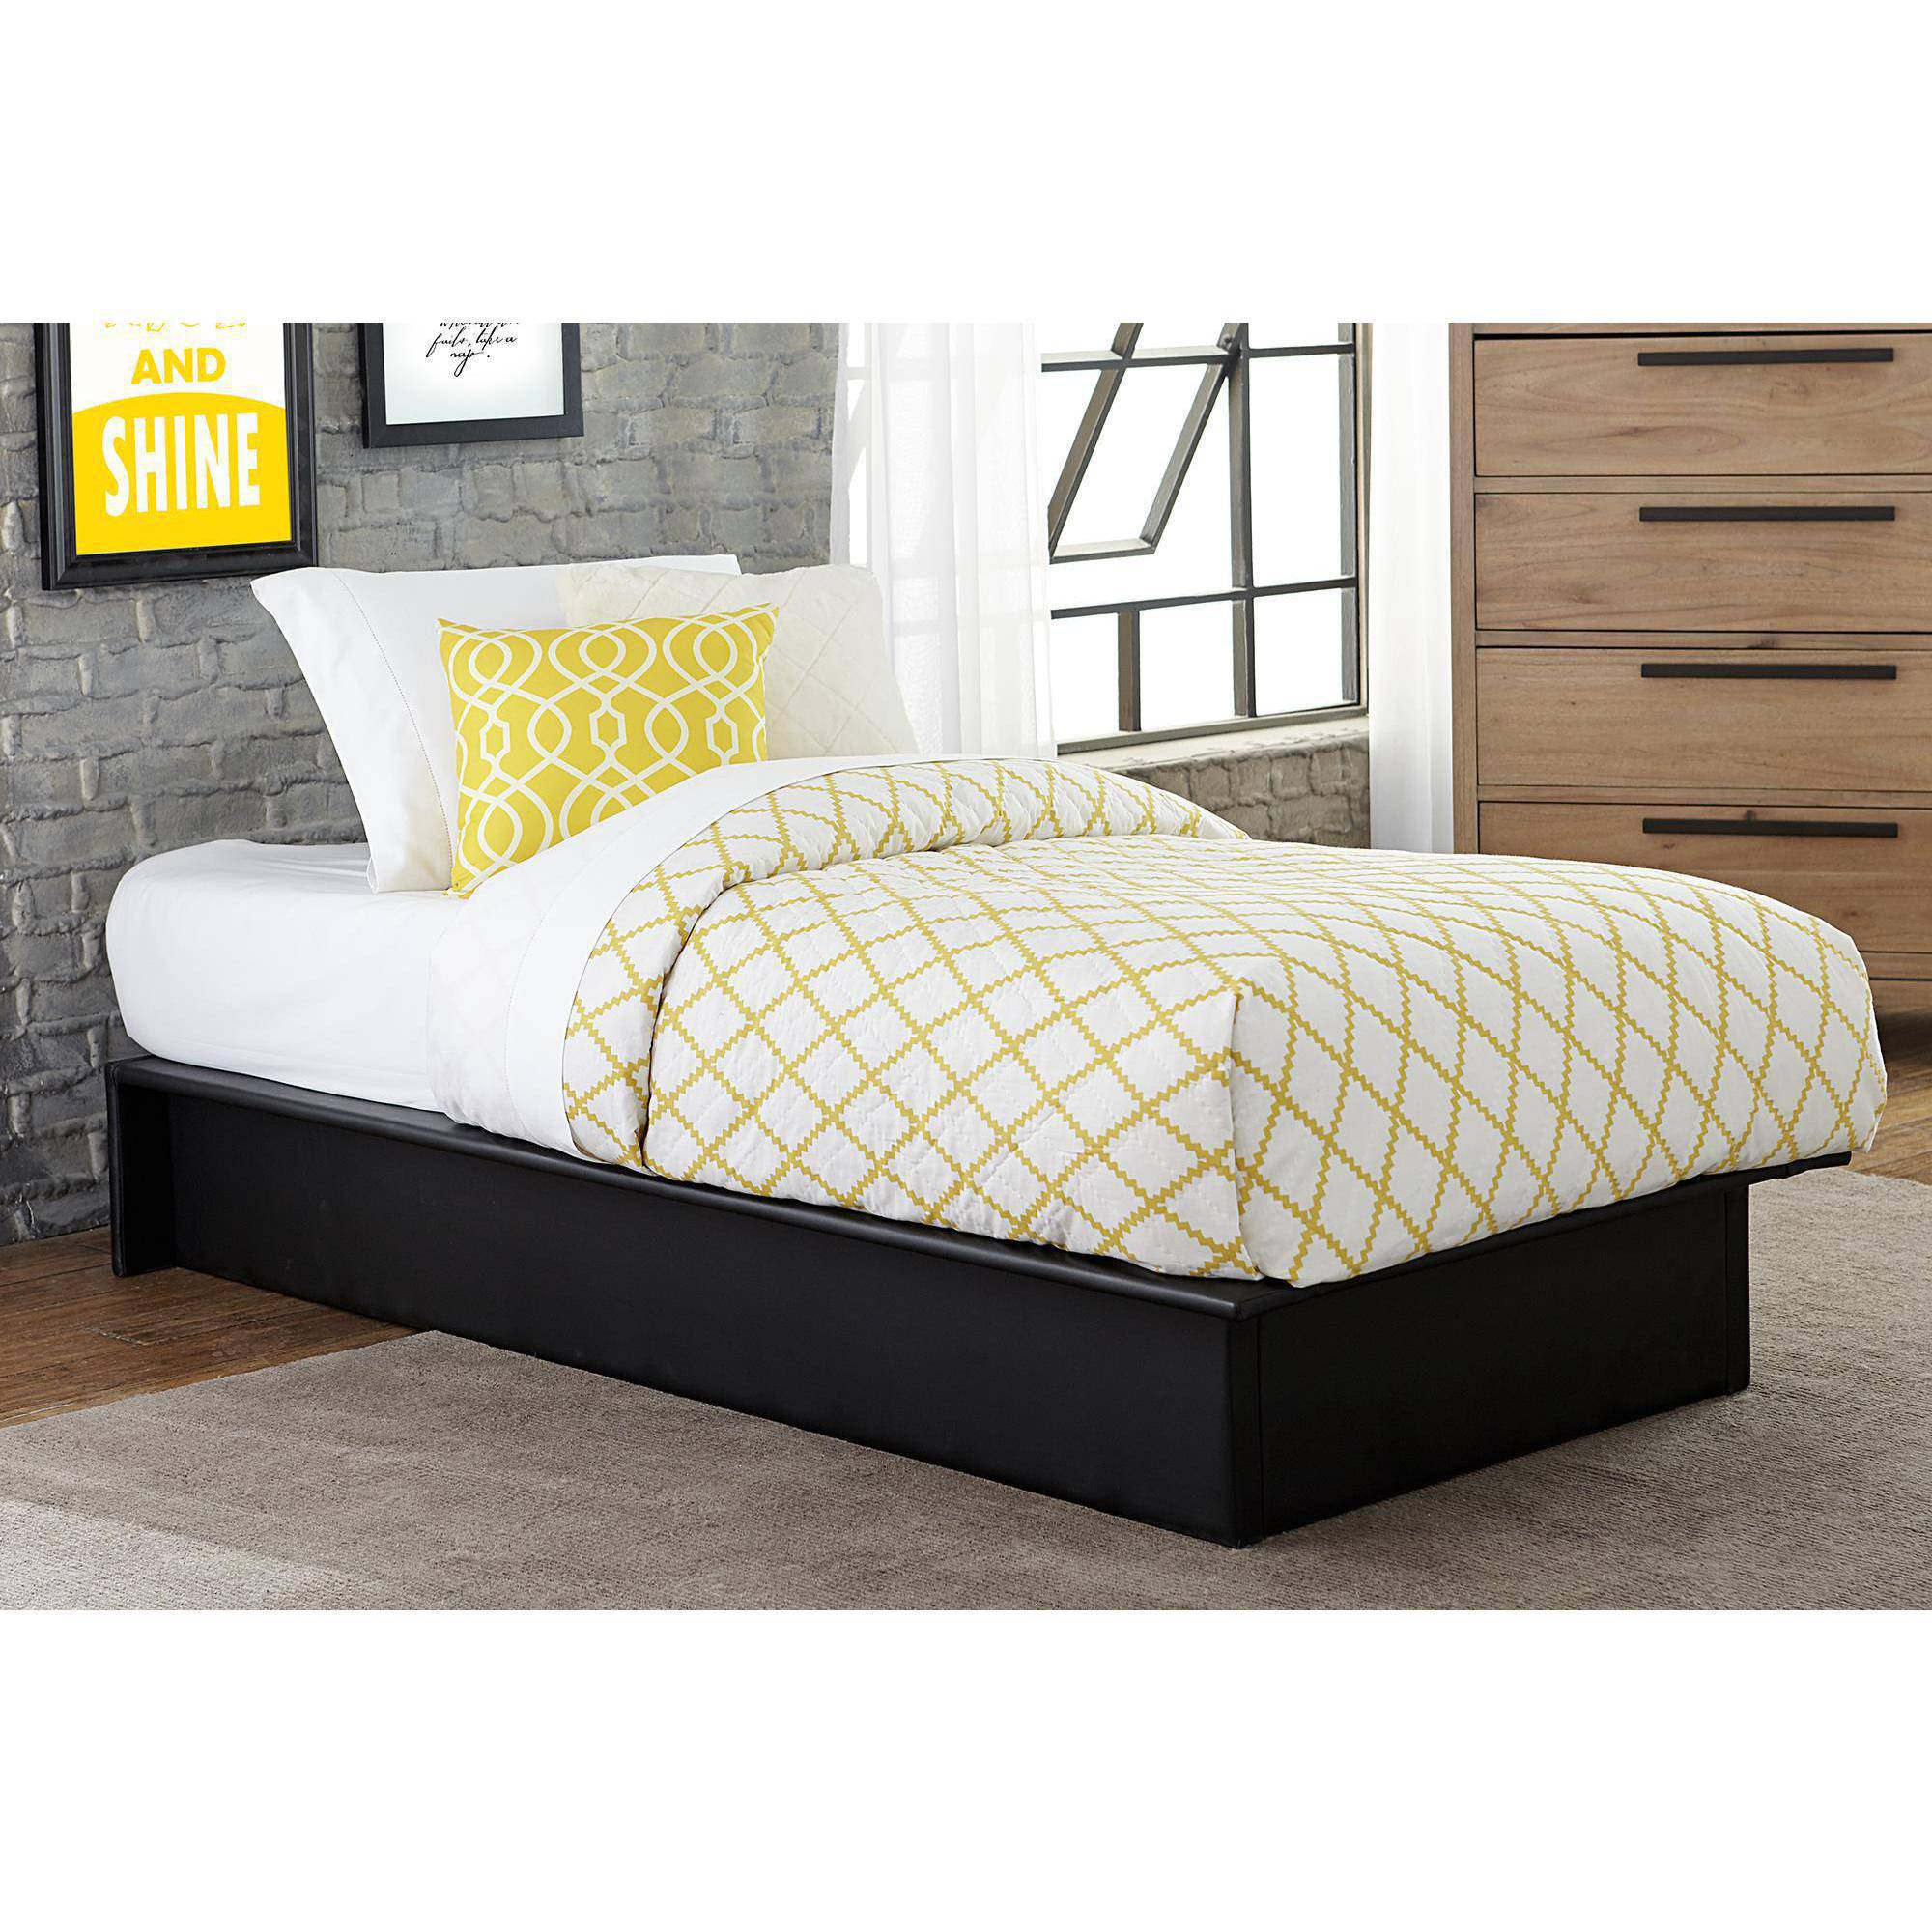 Maven Upholstered Faux Leather Platform Bed Black